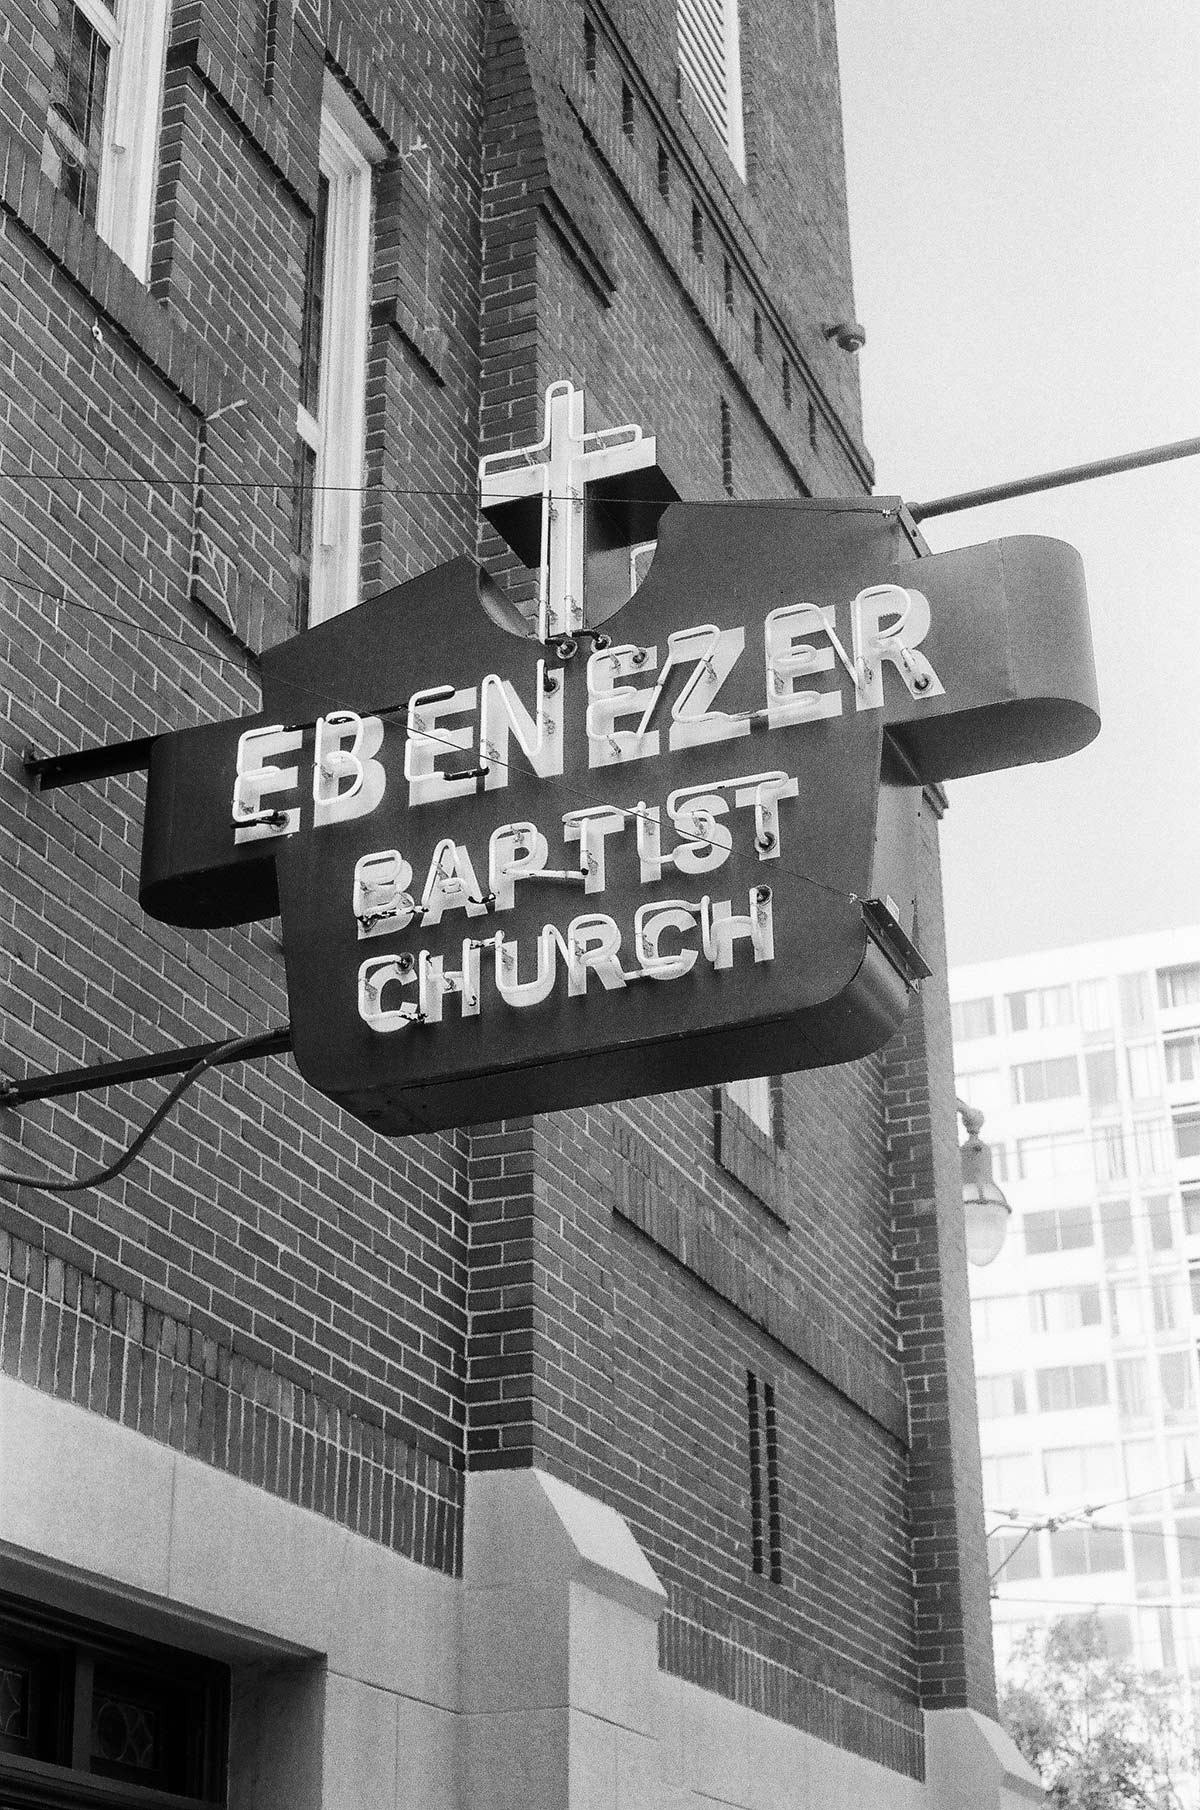 MLK's Ebenezer Baptist Church, where Dr. King was a pastor and gave sermons.